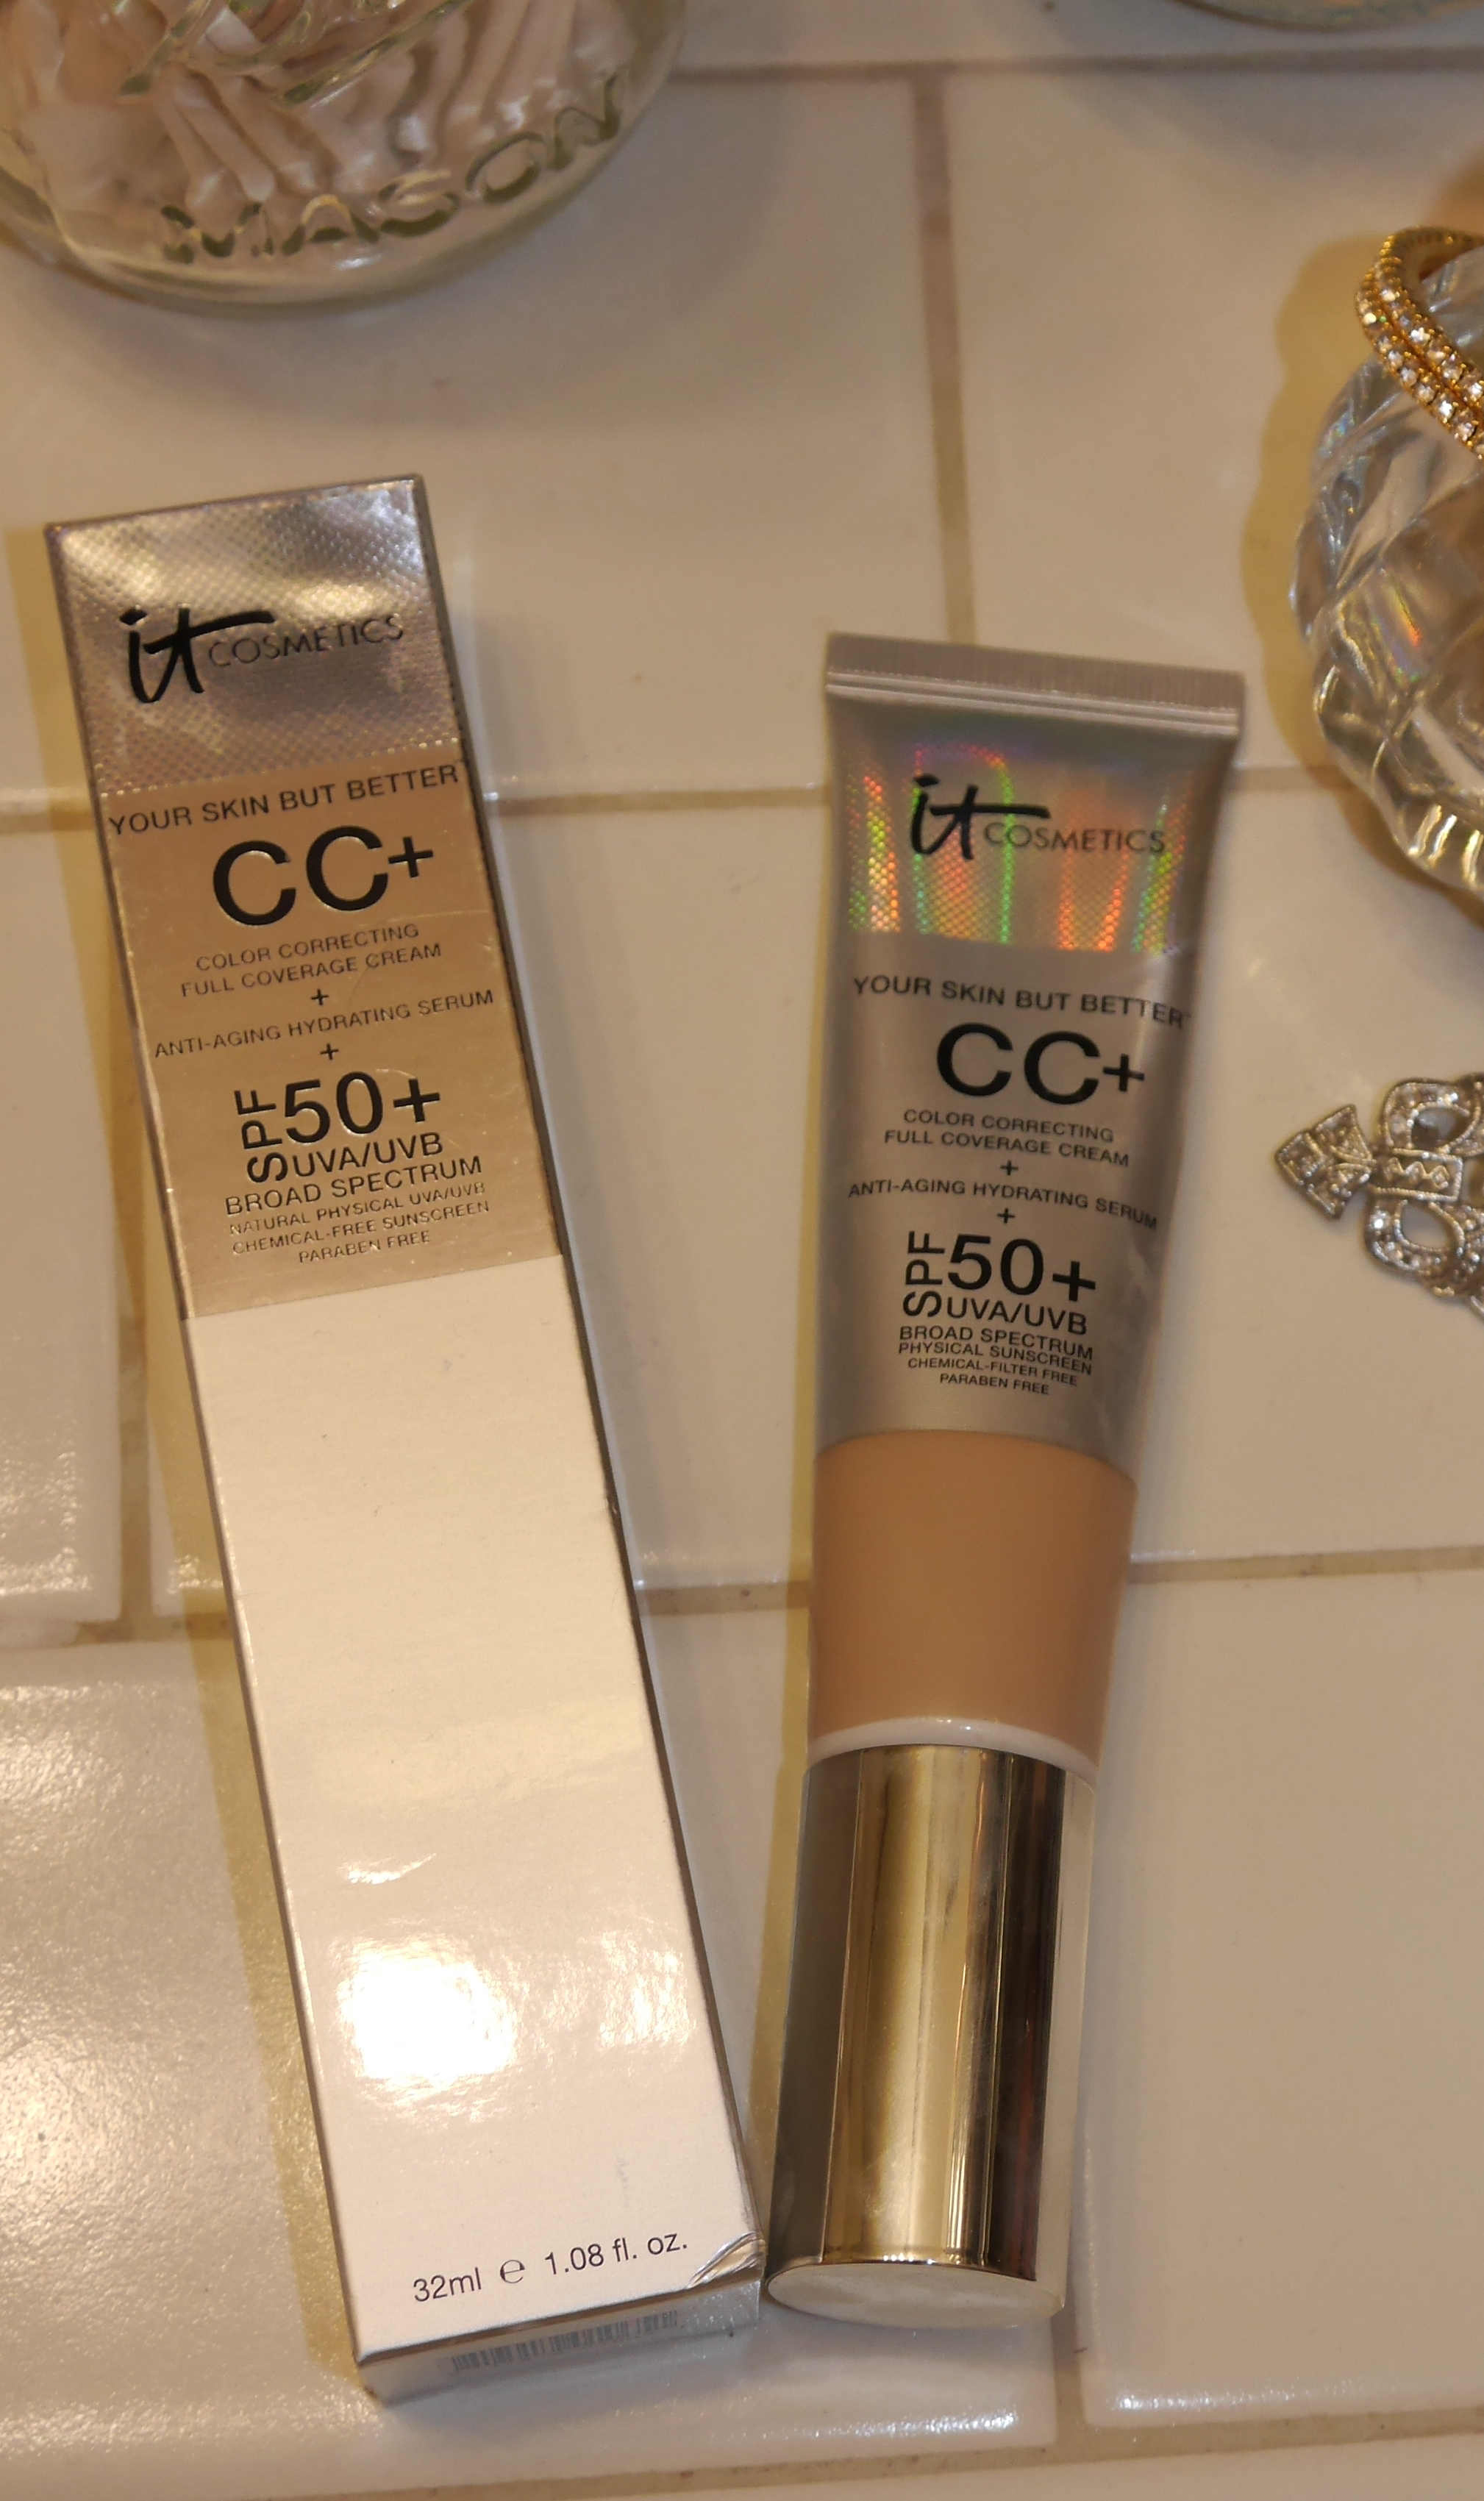 CC+ Cream At Home & On The Go Kit by IT Cosmetics #6